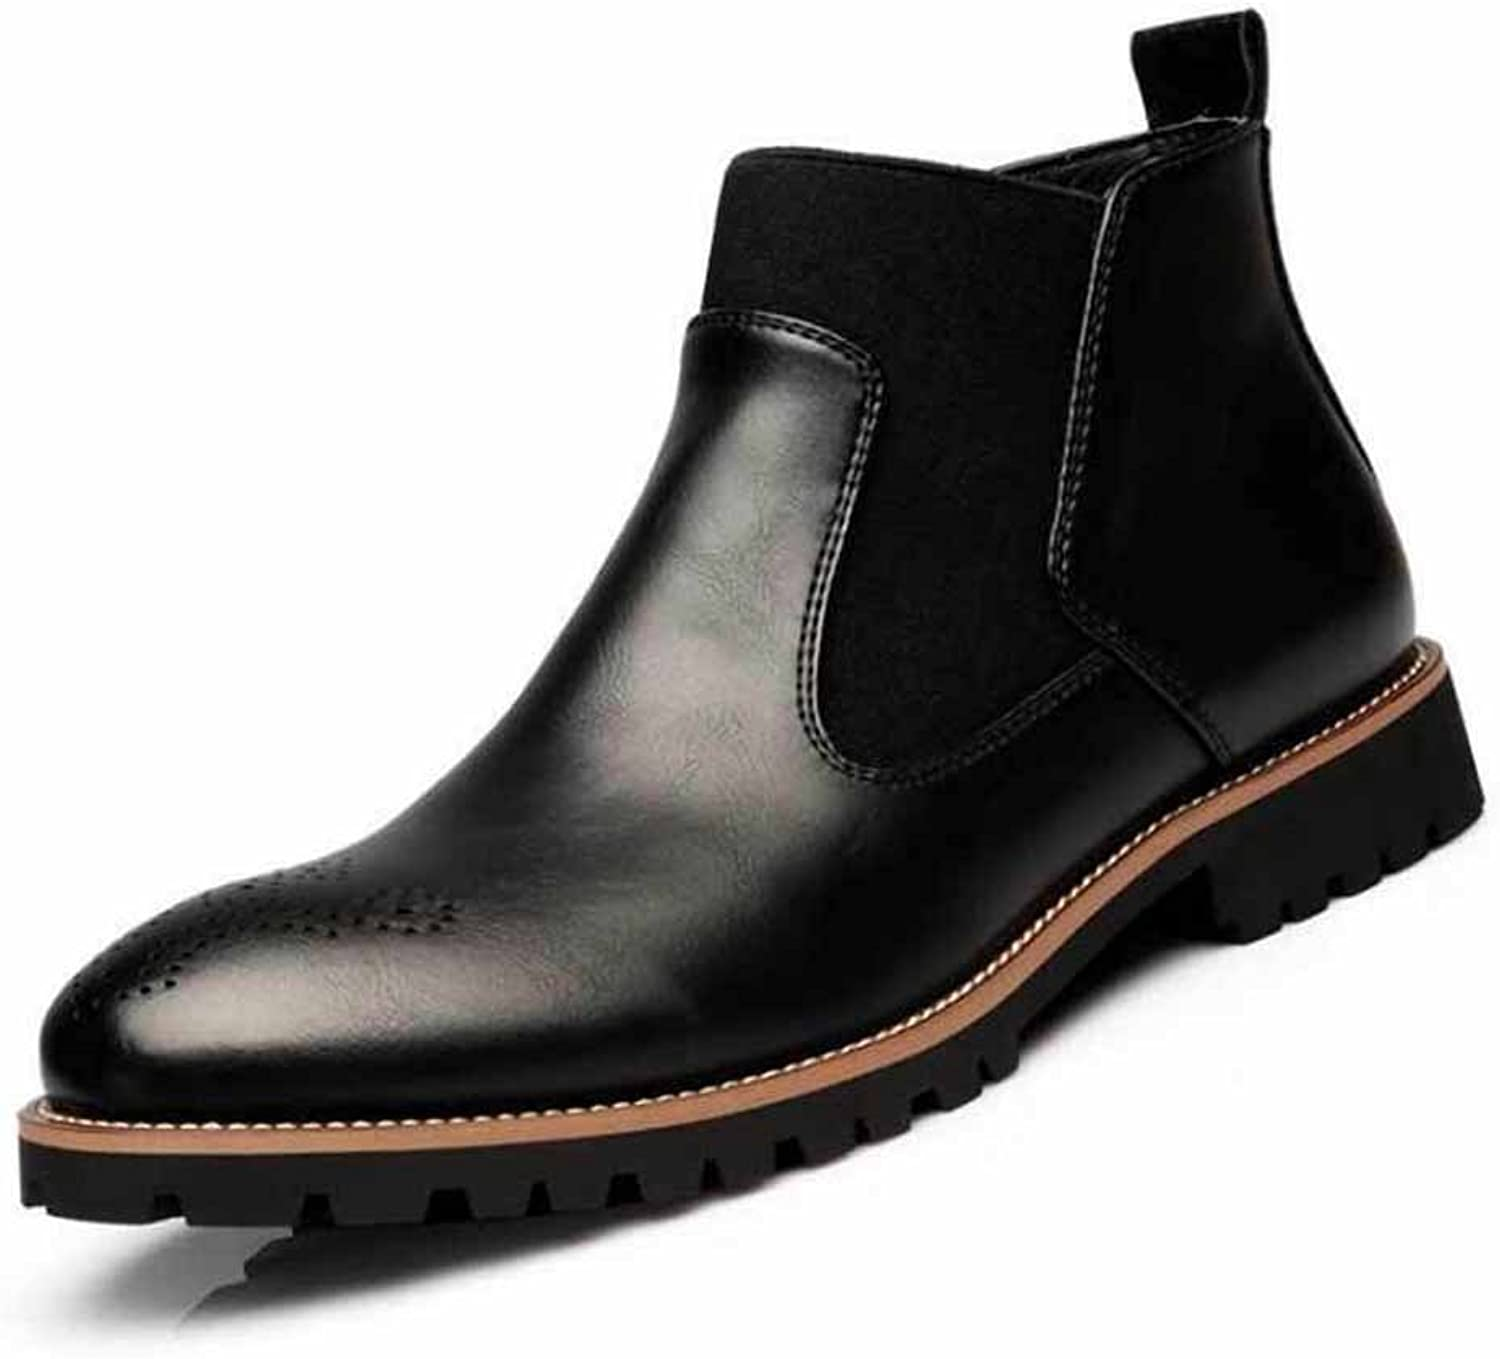 GLSHI Men Casual Chelsea Boots New Comfortable Leather shoes Brogue British Ankle Boots